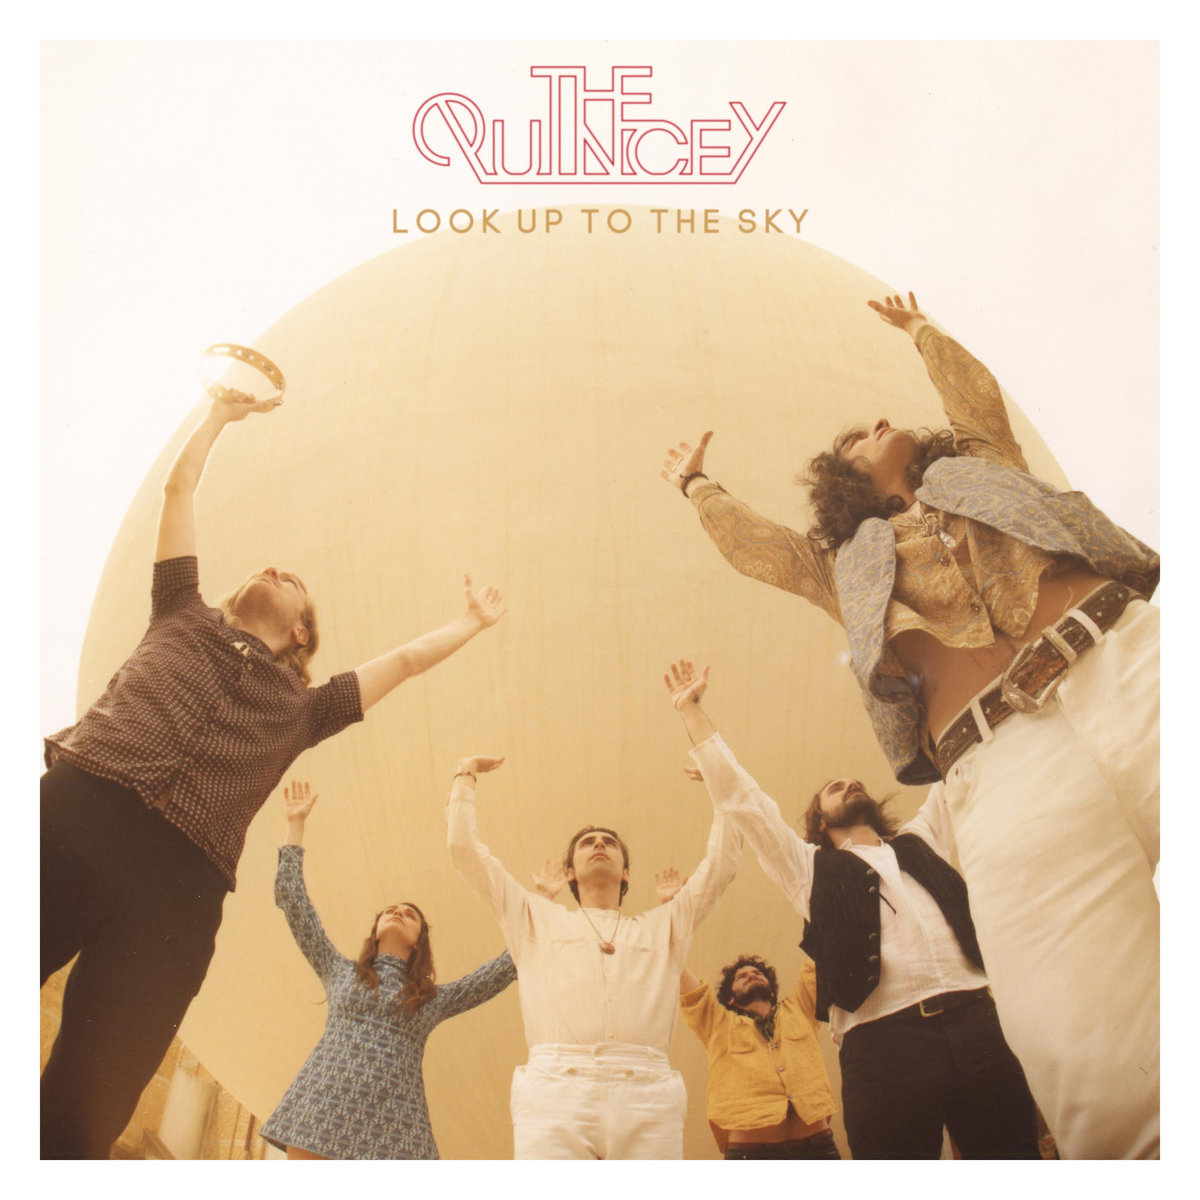 The Quincey - Look Up To The Sky @ 'Look Up To The Sky' album (alternative, united kingdom)